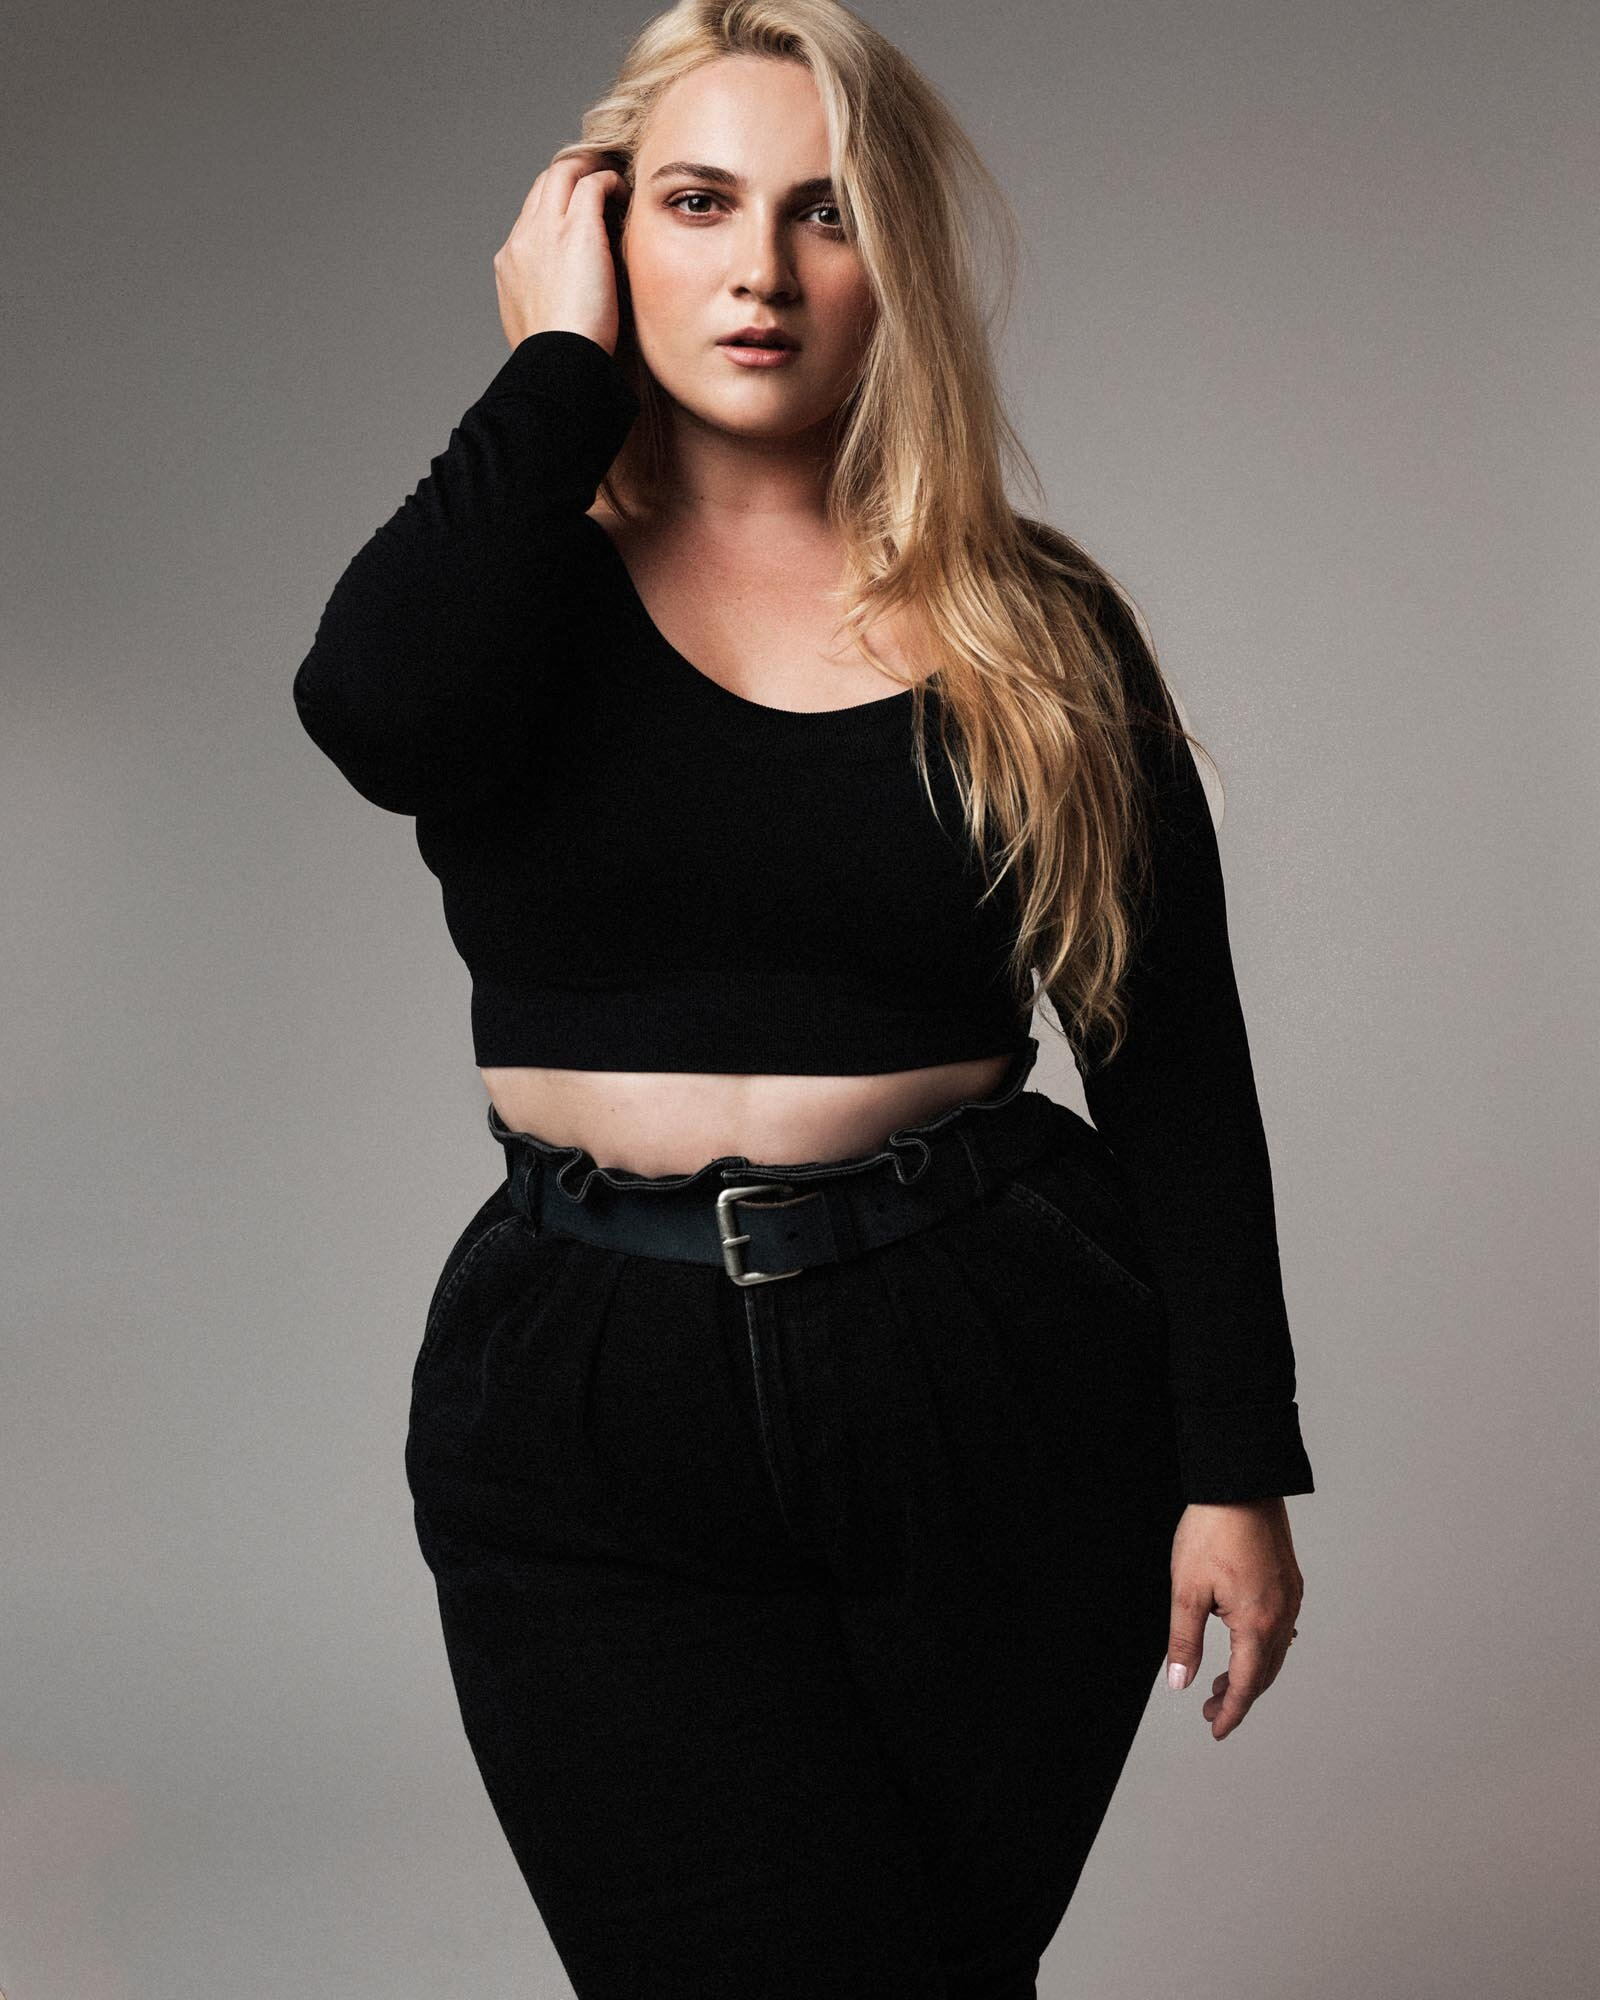 nyc-photographers-plus-size-models-test-10008.jpg